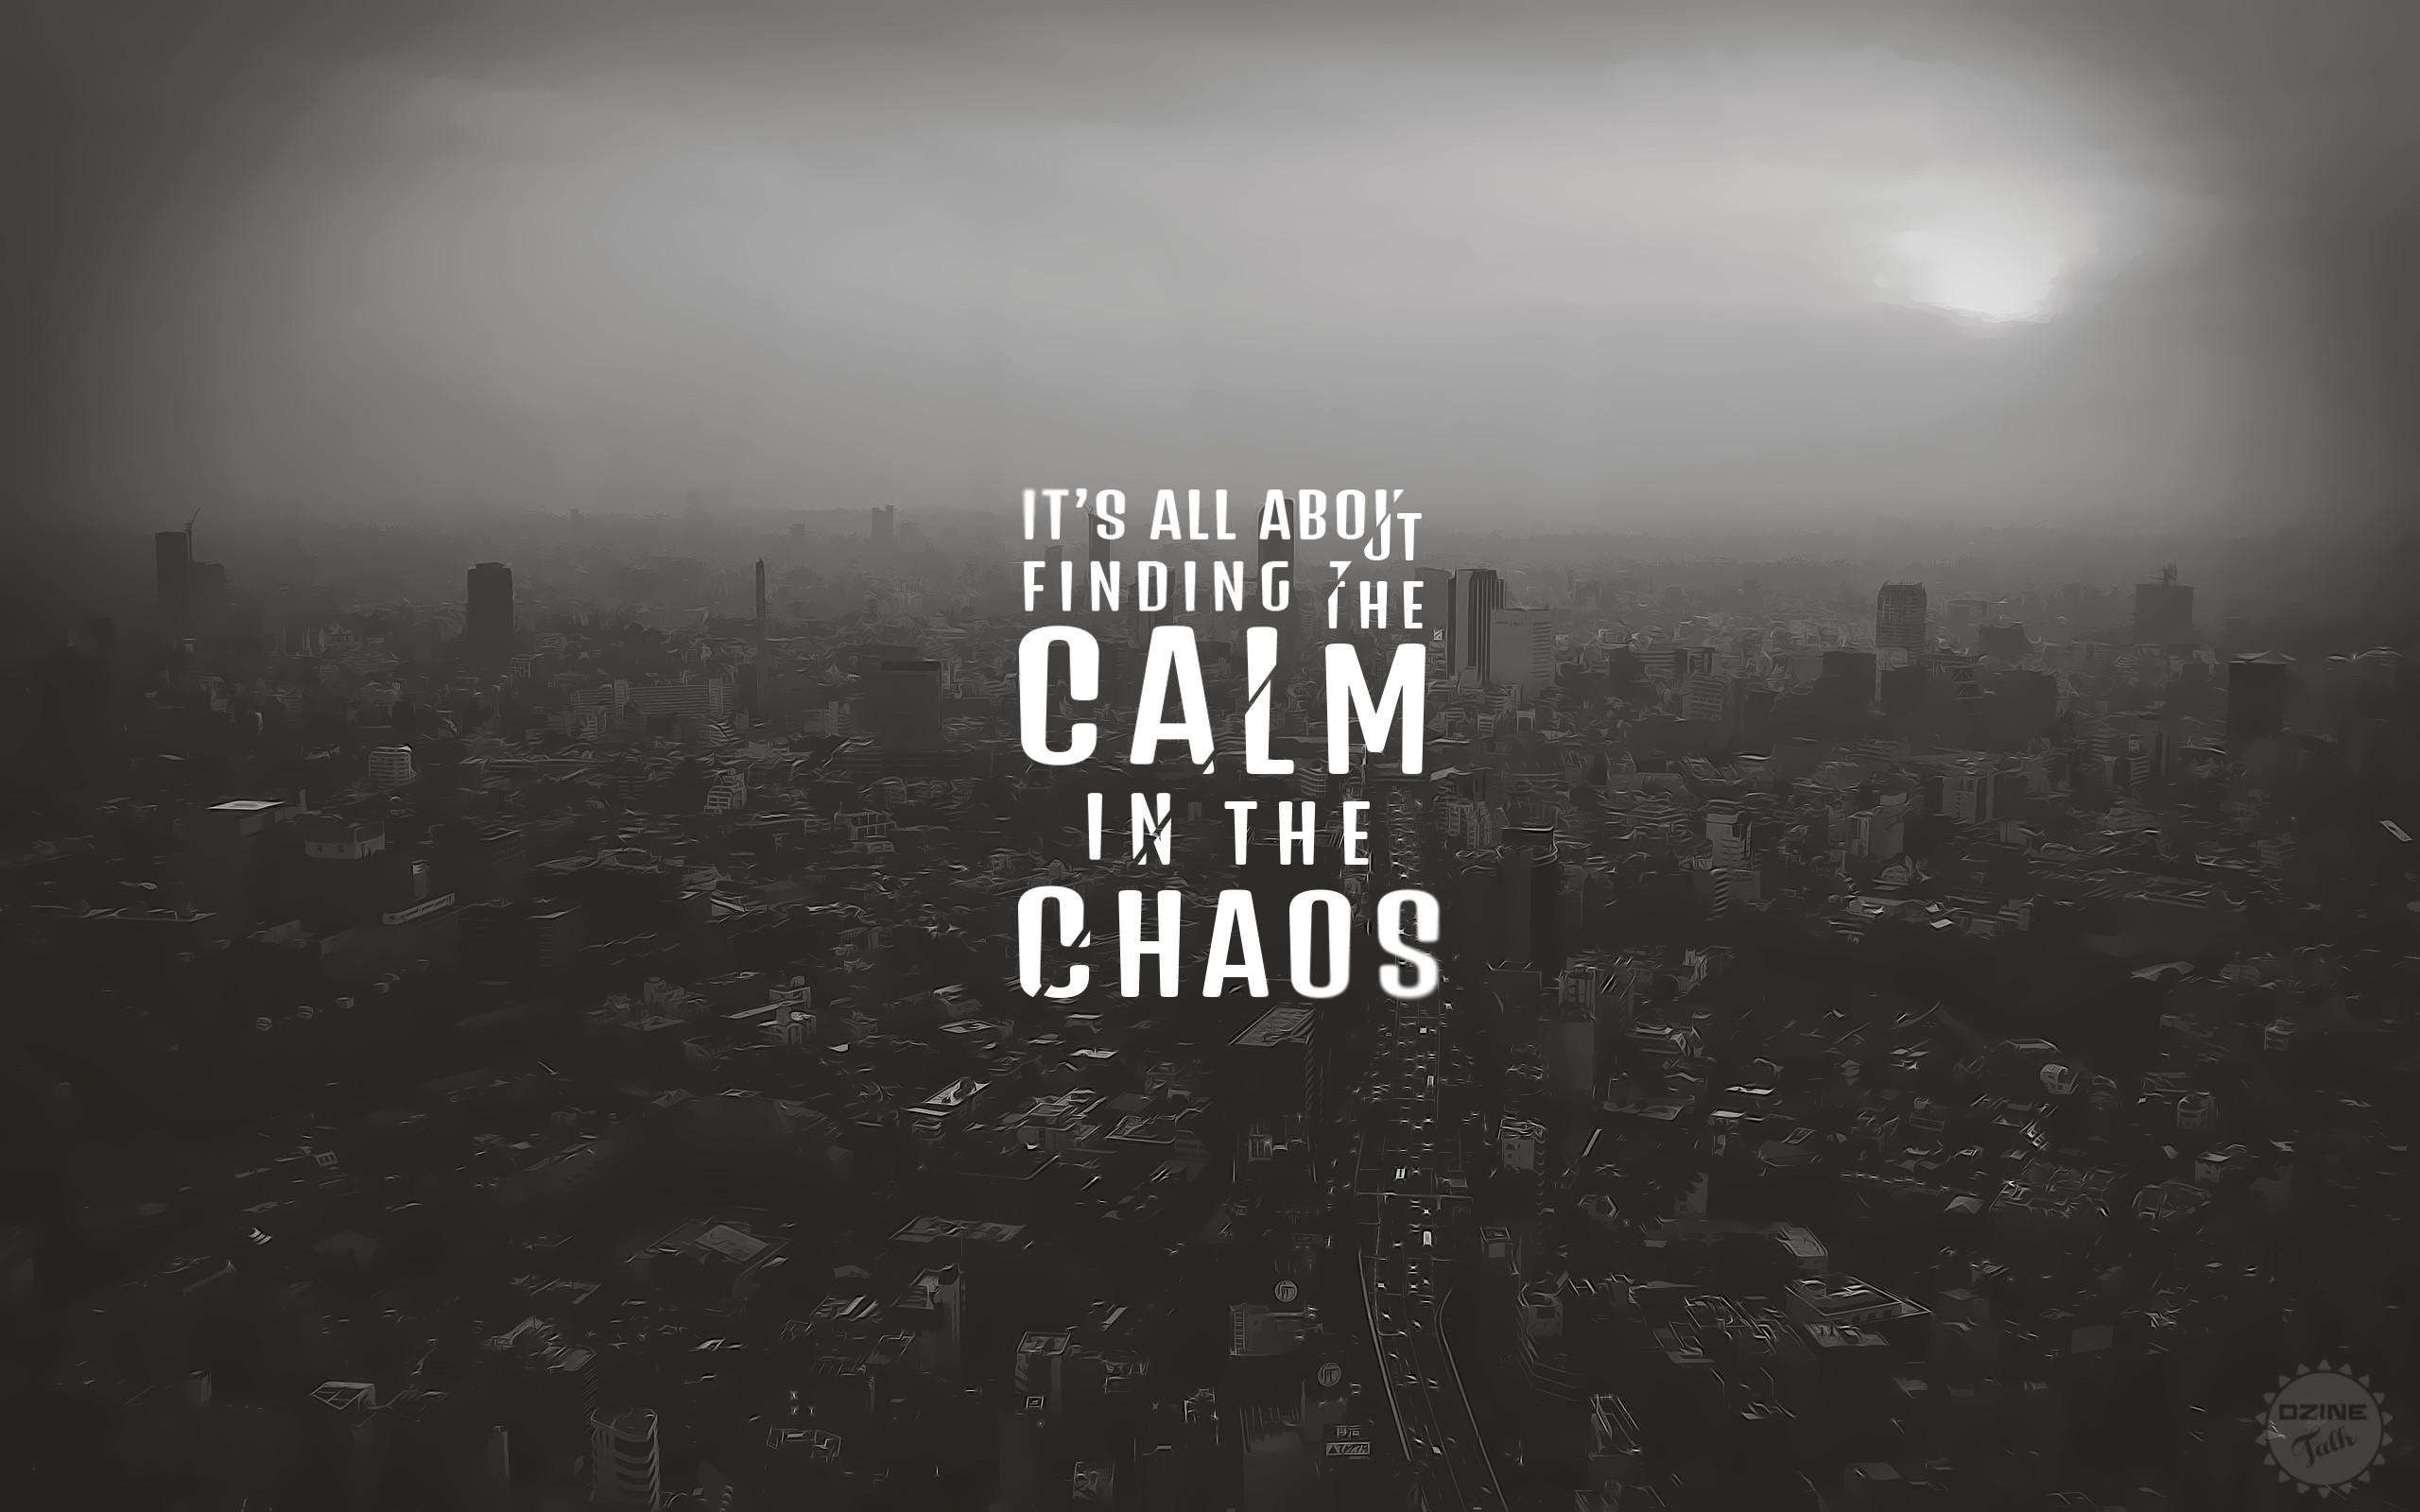 Its All About Finding The Calm In The Chaos Hd Typography 4k Wallpapers Images Backgrounds